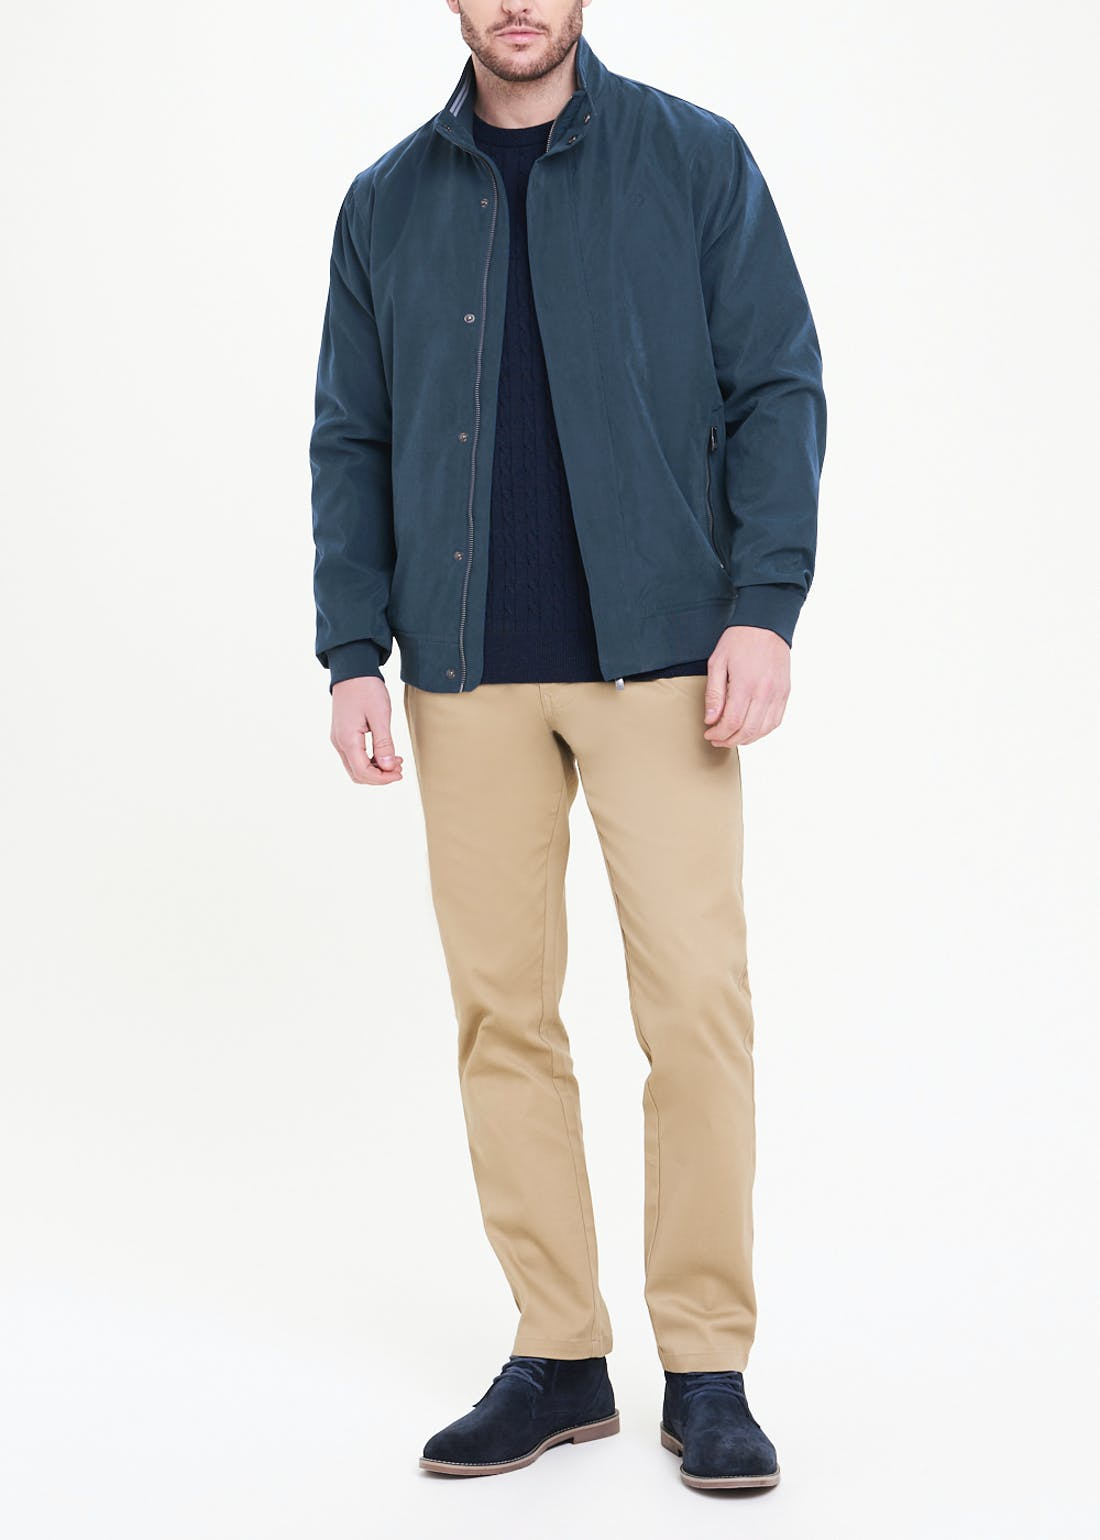 Lincoln Navy Harrington Jacket